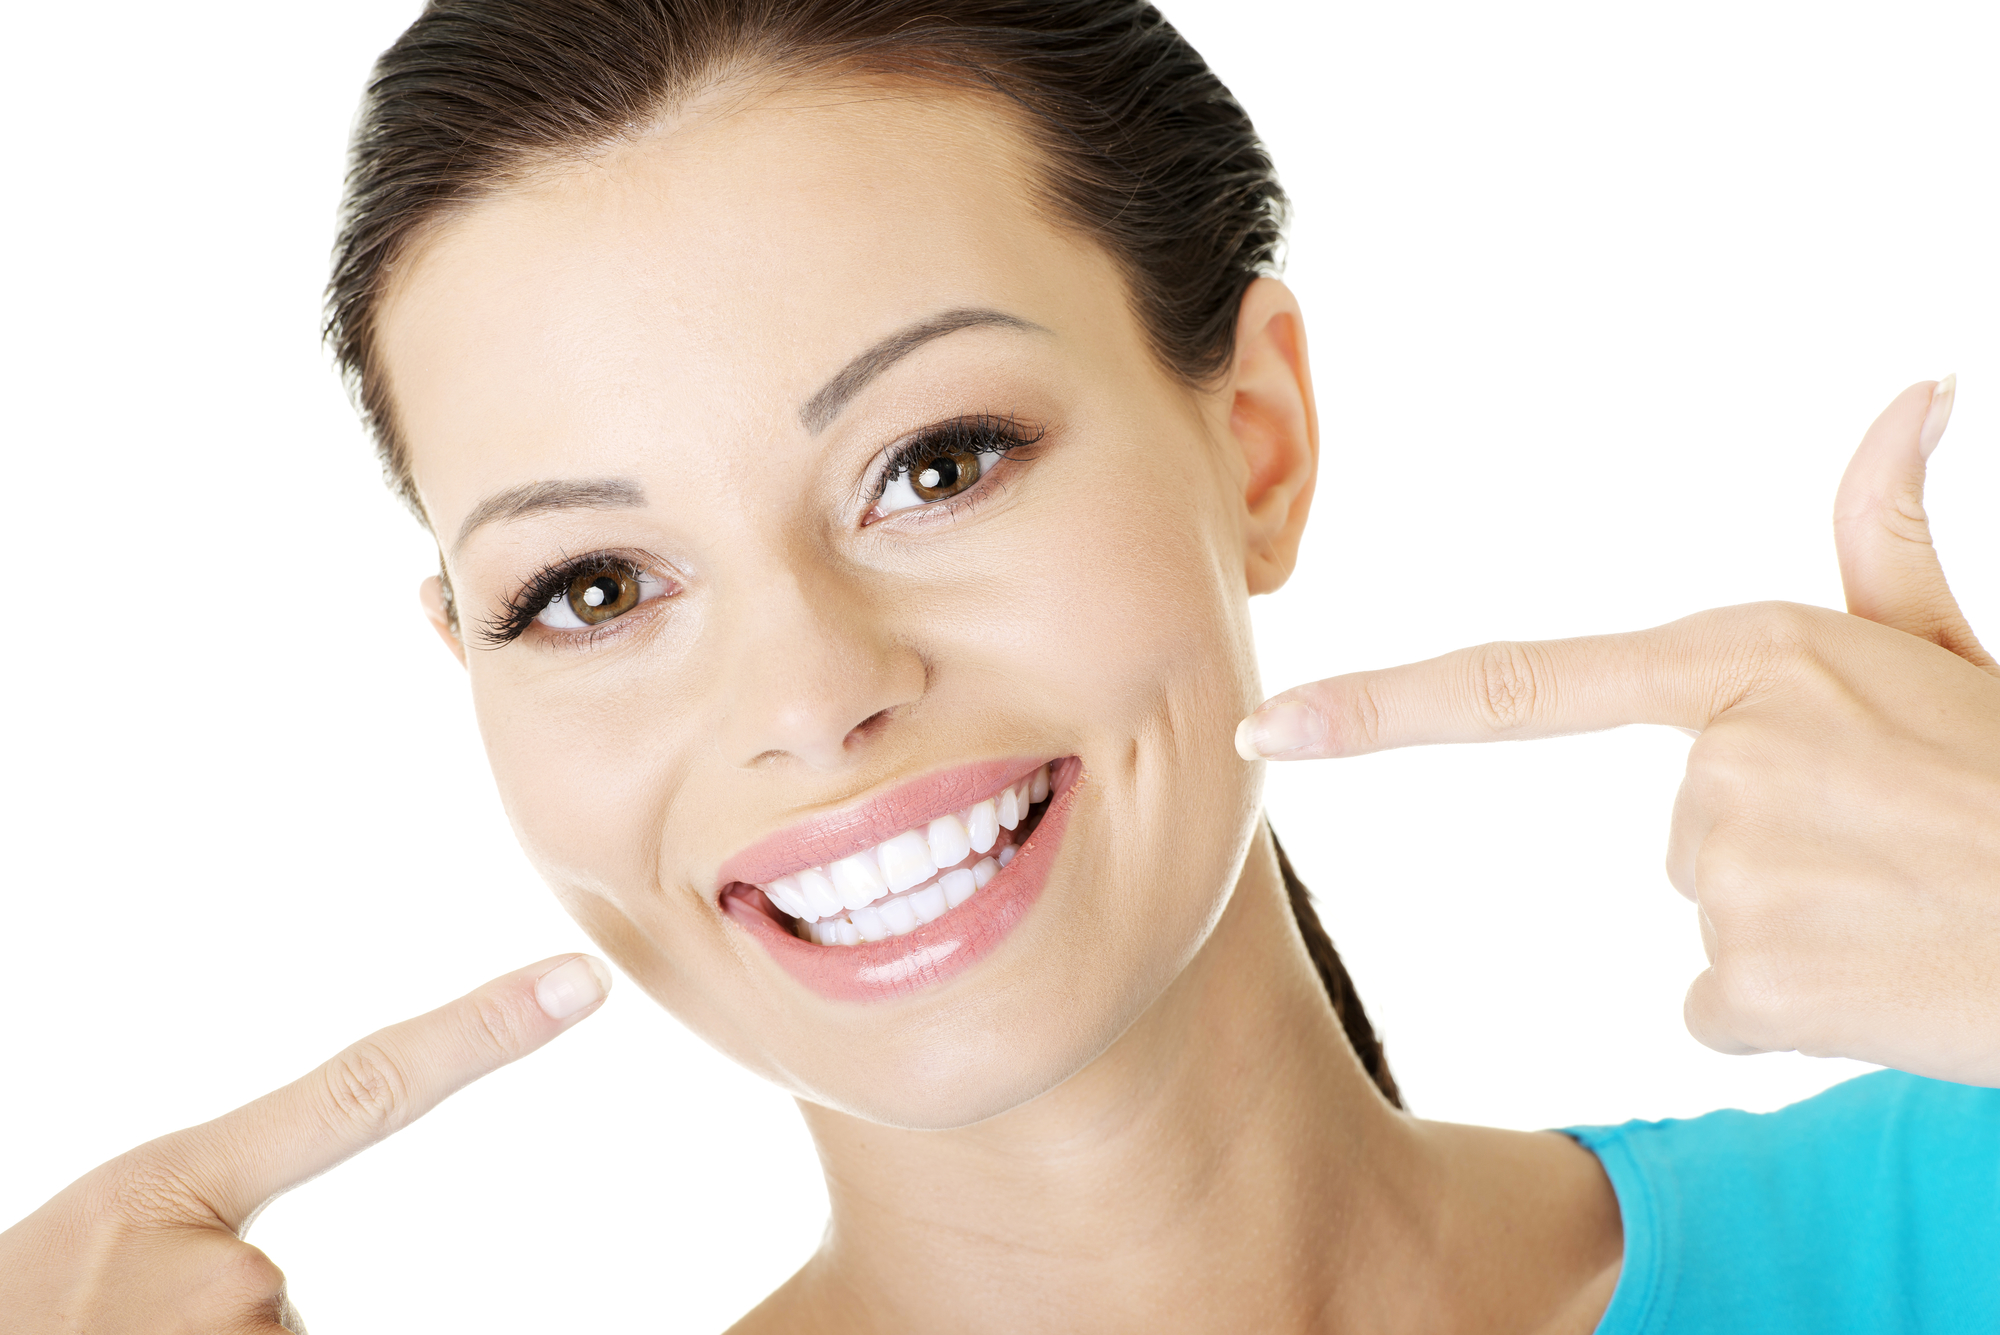 where can i get dental implants in miami beach